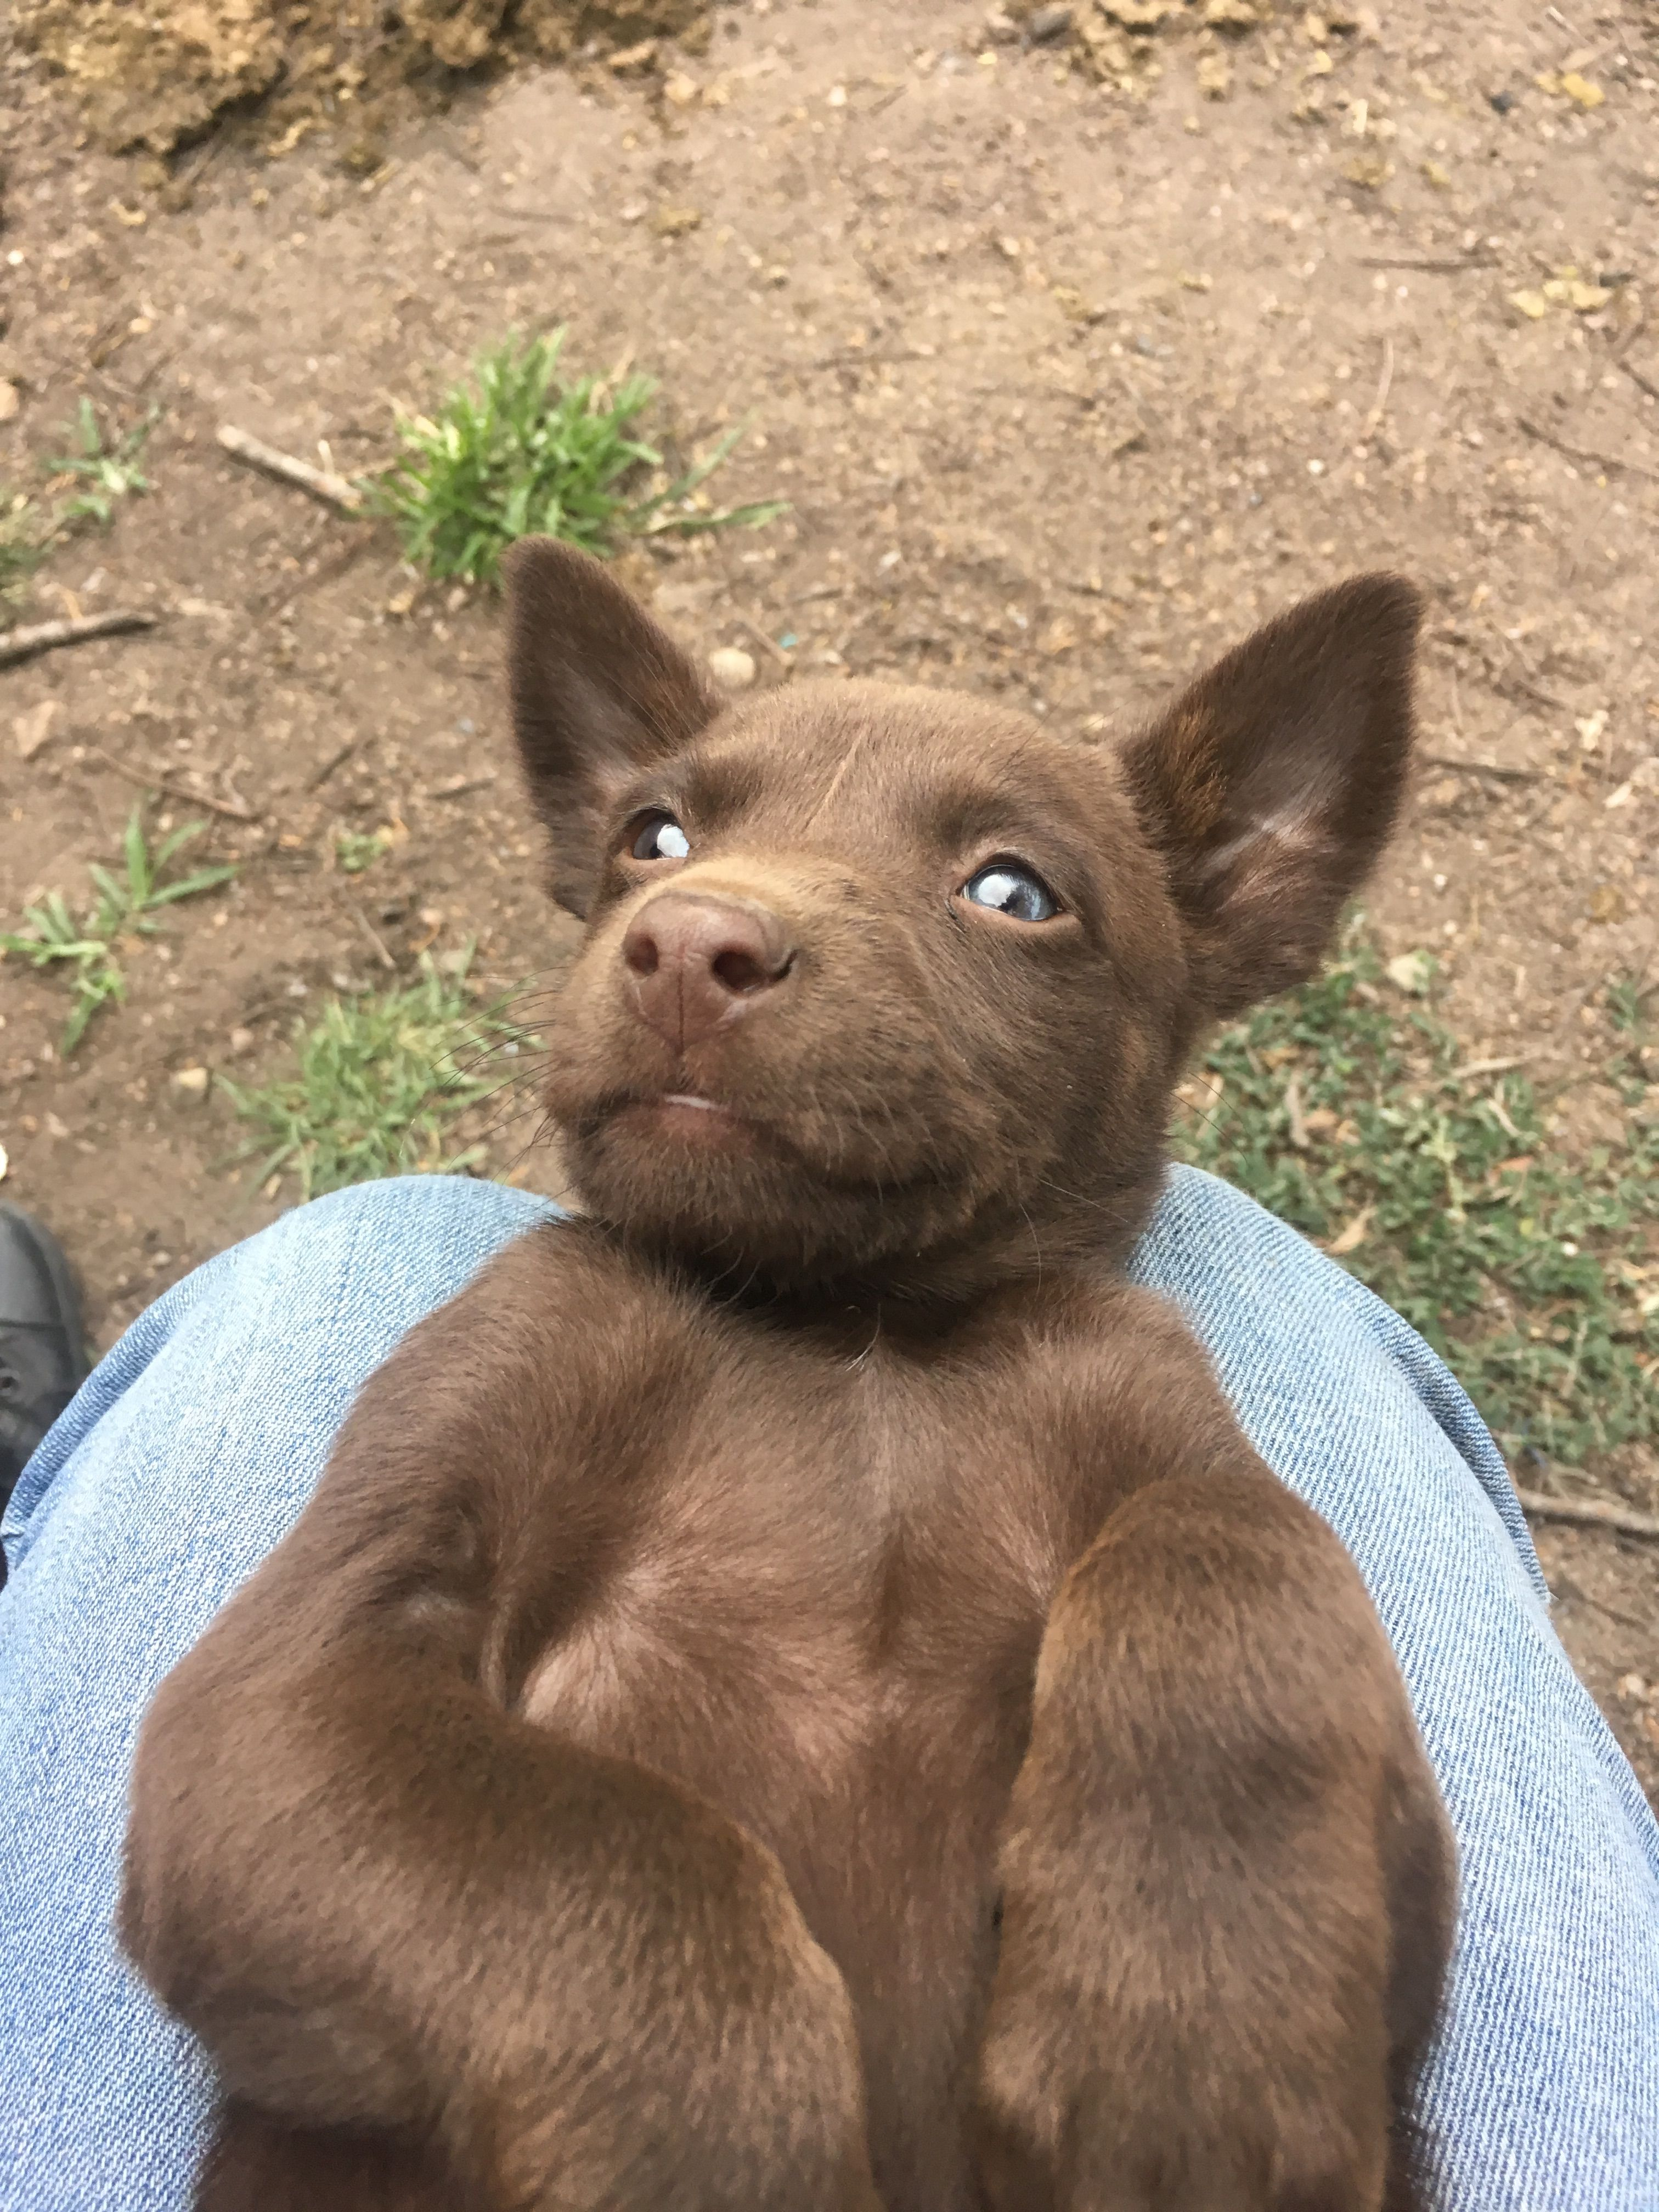 For Sale Kelpie Pups Males 300 Females 200 Pambula Nsw Australia Both Working Kelpie Parents Ring 0484 352 775 Pup Labrador Retriever My Pictures